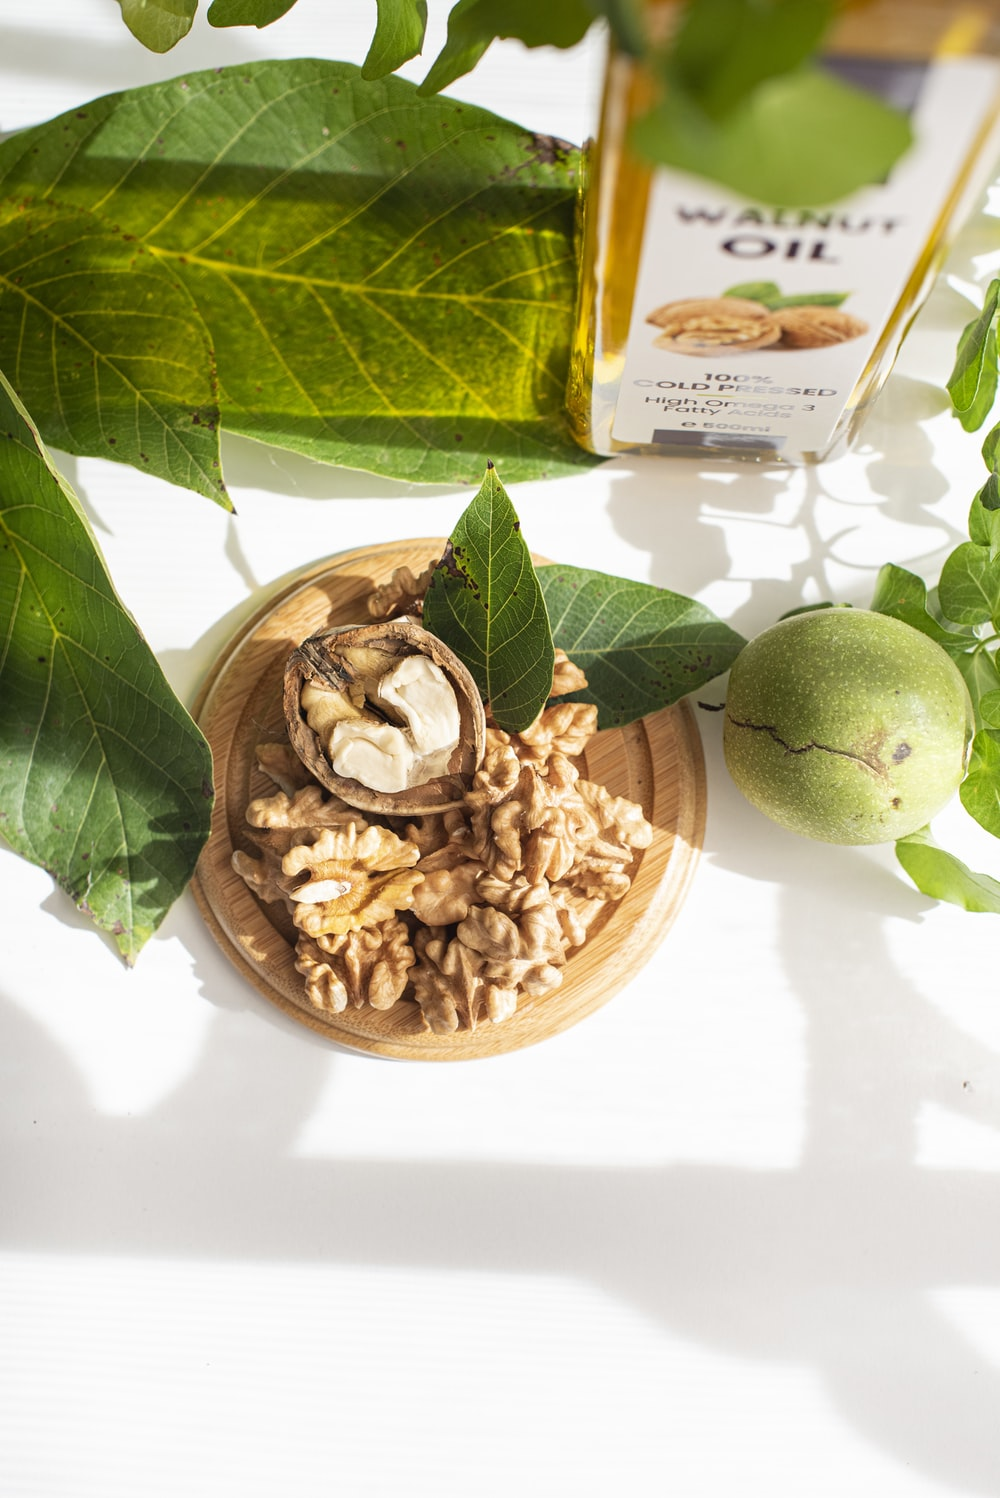 green round fruit beside brown nuts on white ceramic bowl